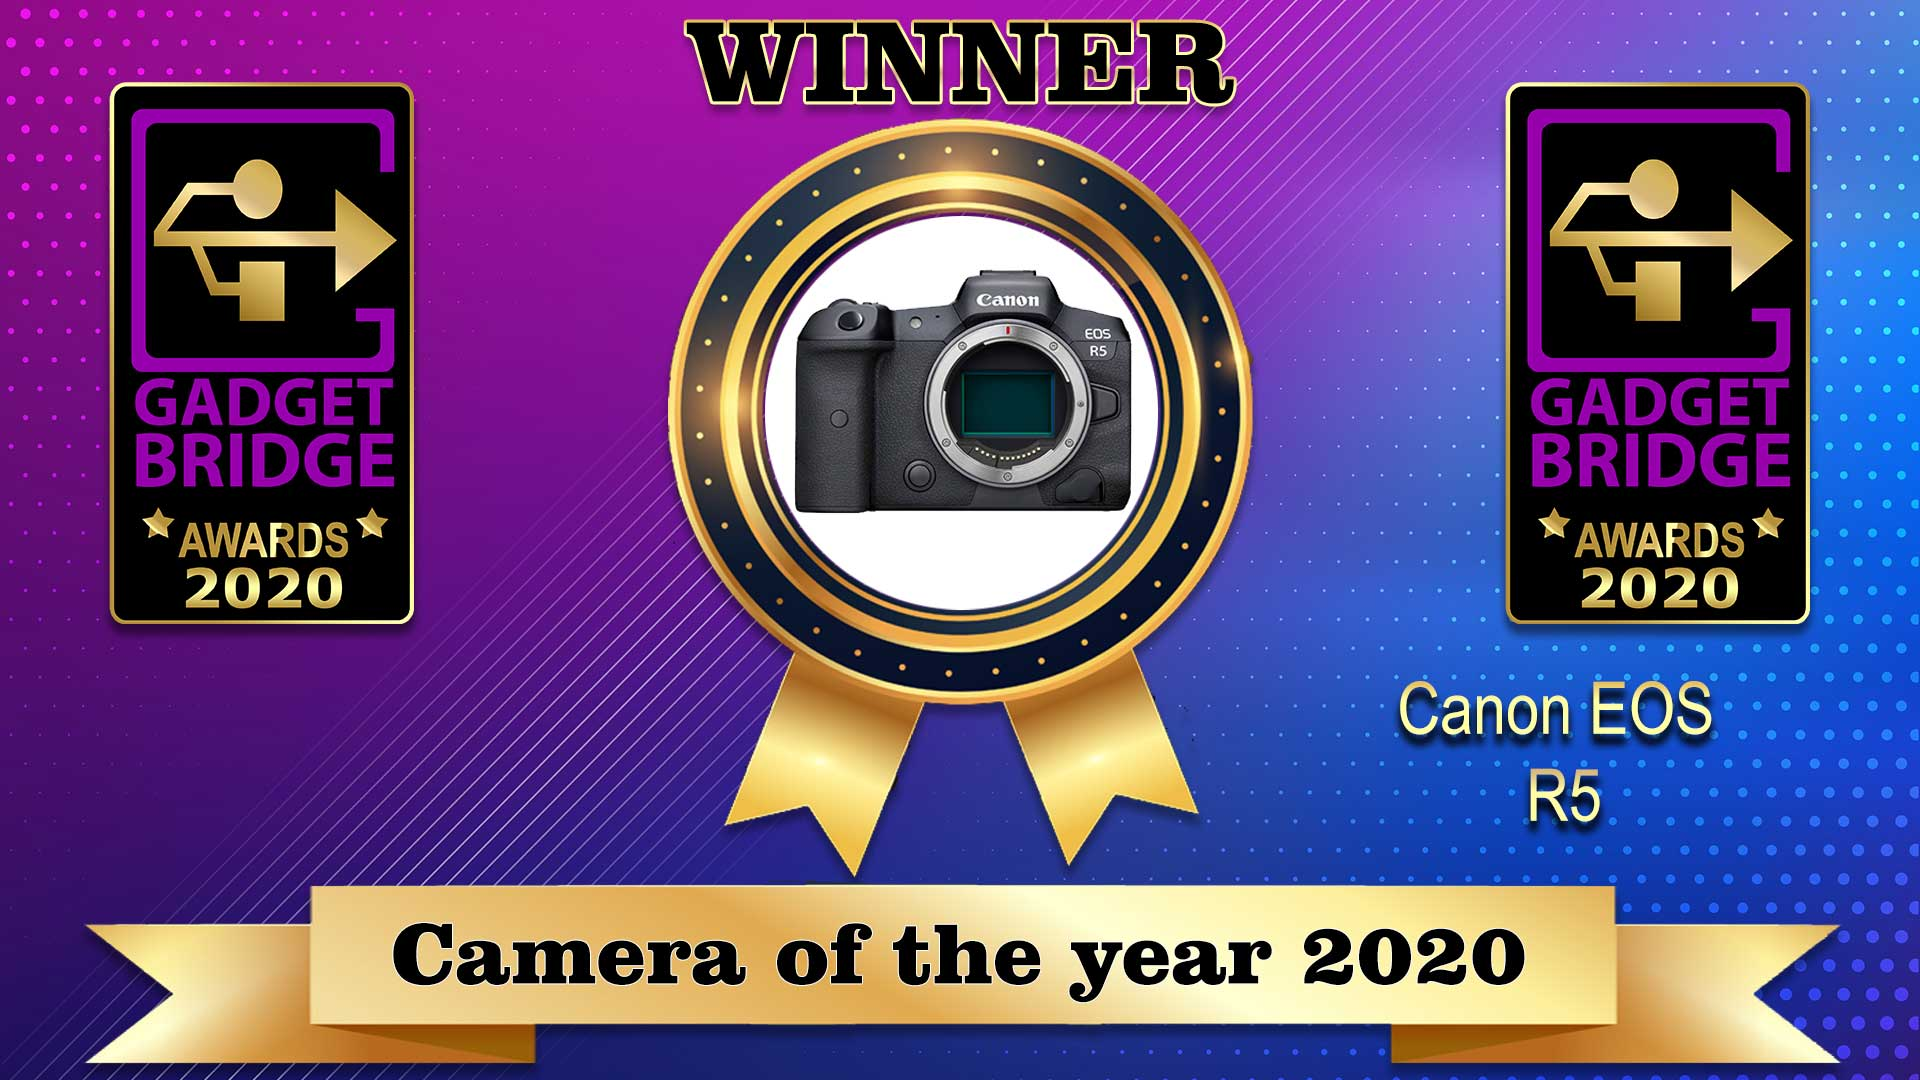 Camera-of-the-year-2020